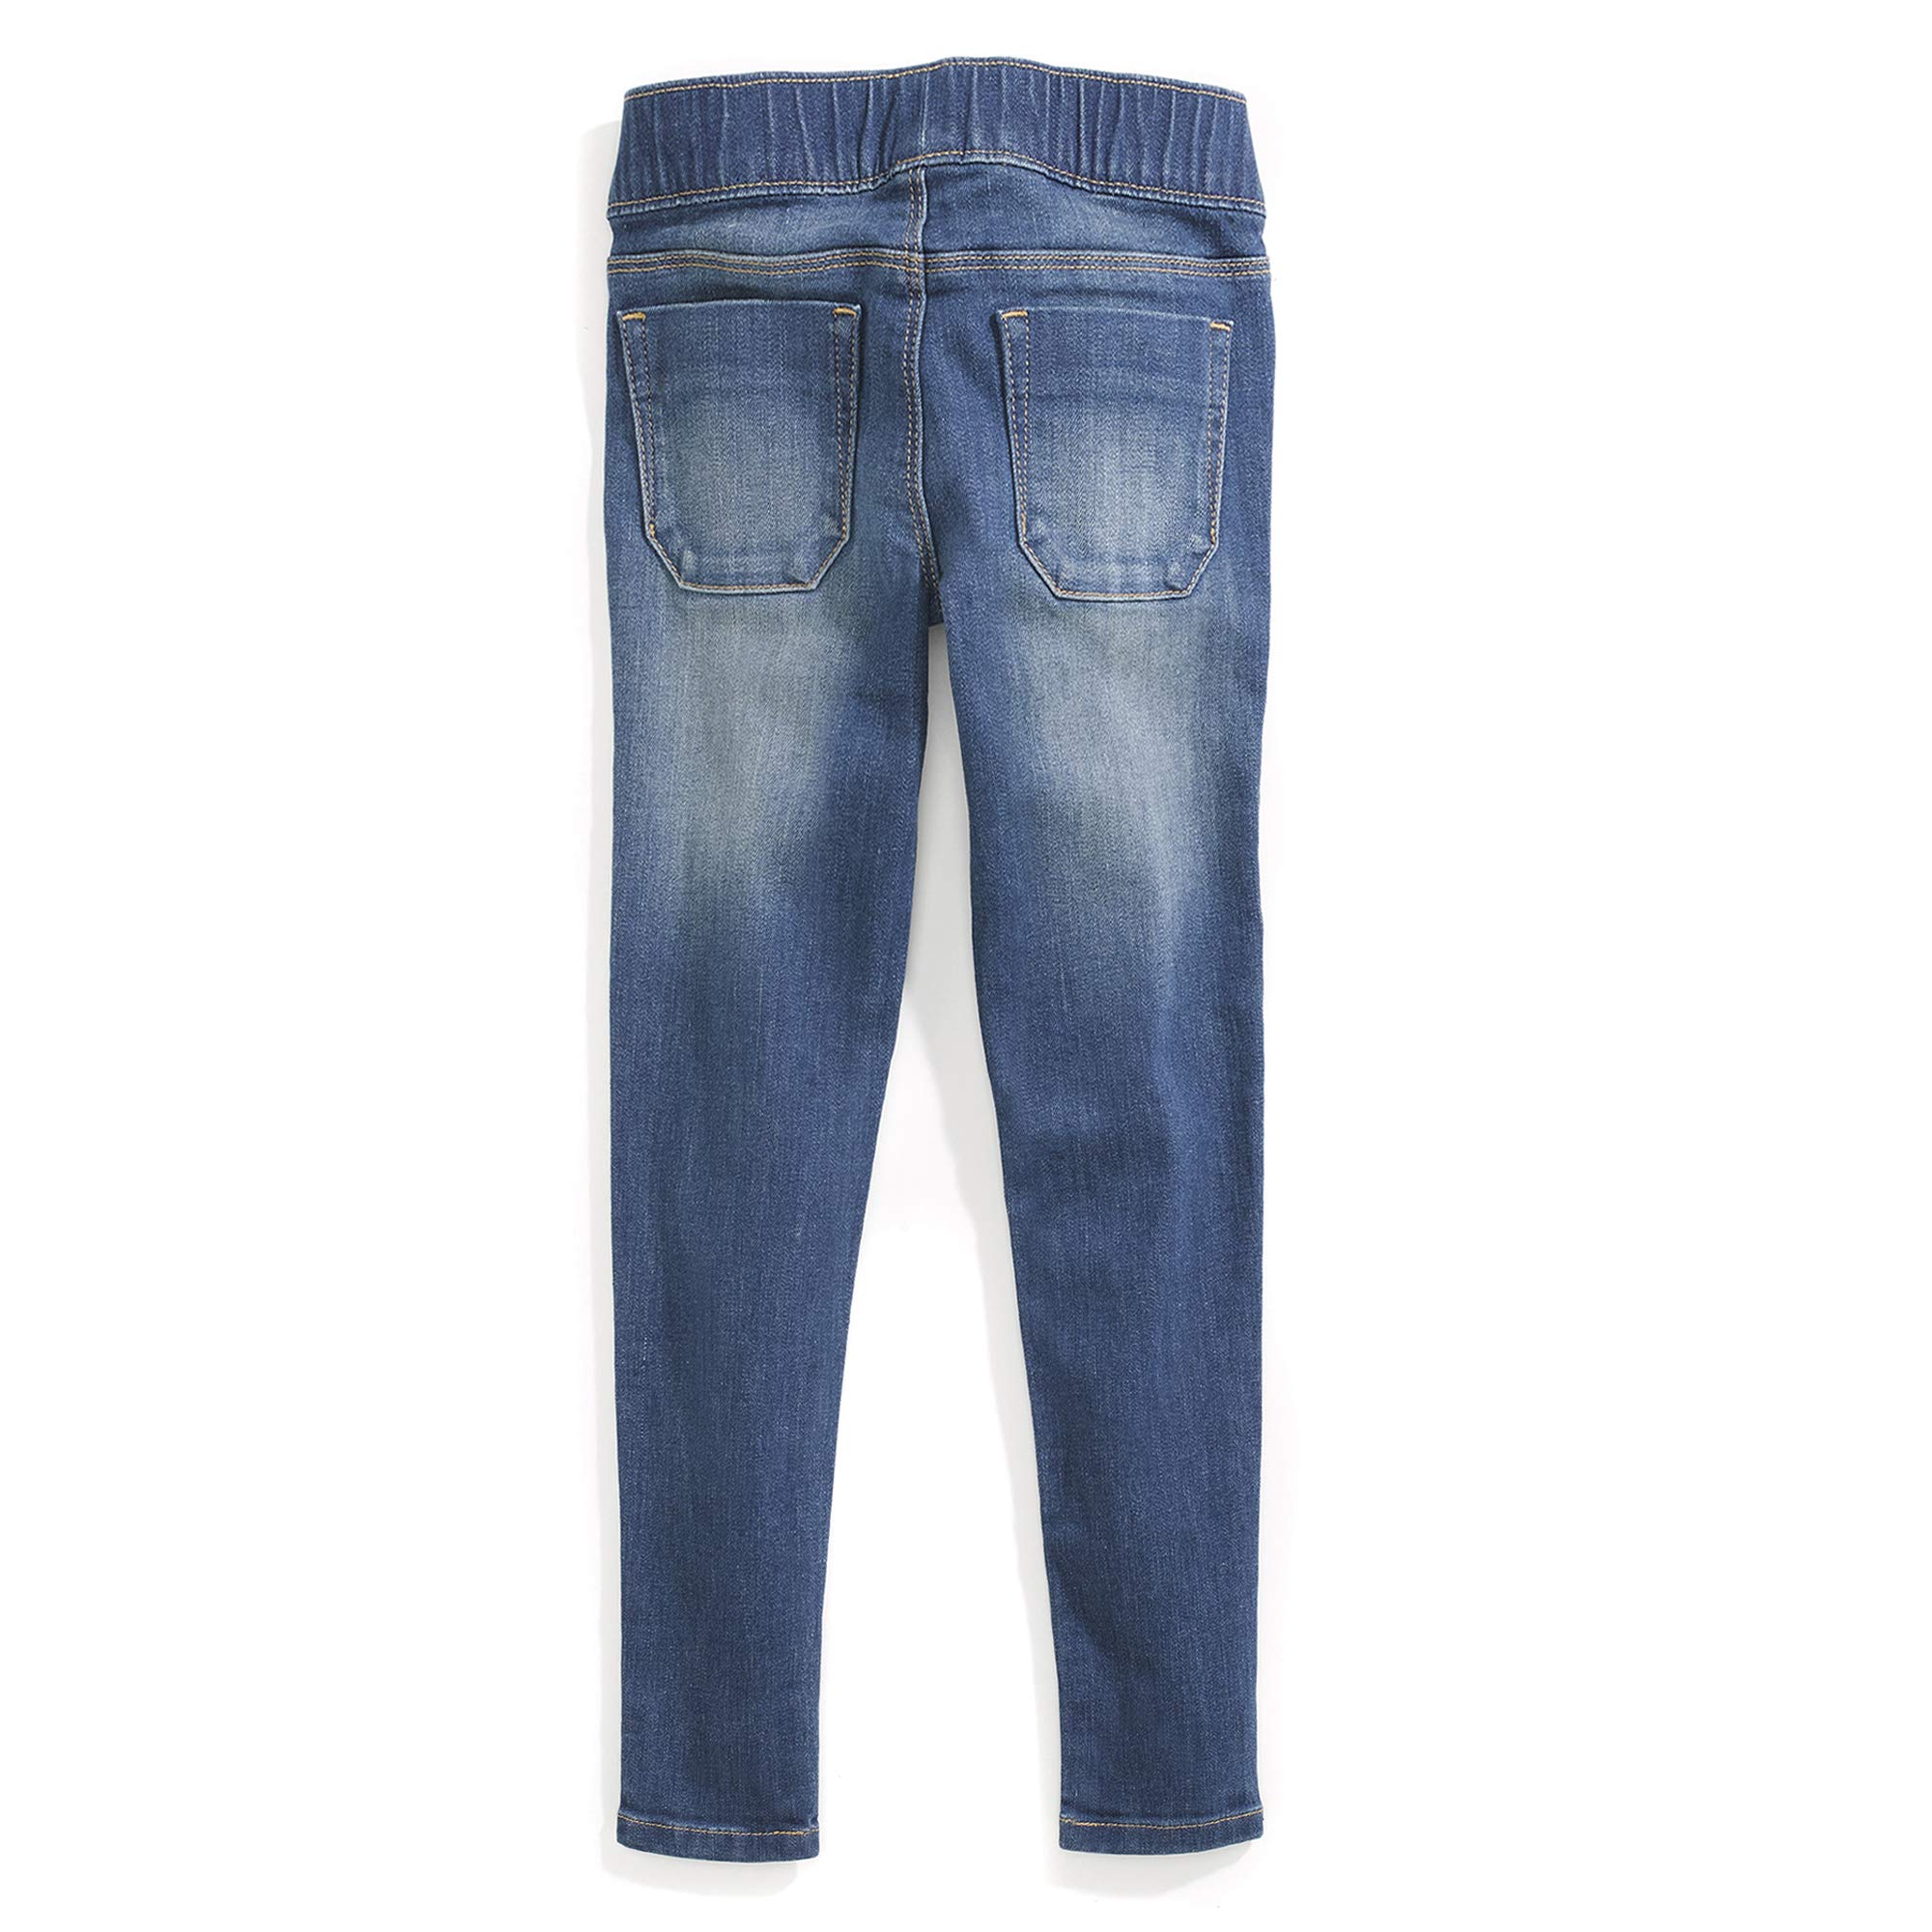 Tommy Hilfiger Girls' Adaptive Jegging Jeans with Elastic Waist and Adjustable Hems, KEITH wash 10 by Tommy Hilfiger (Image #4)